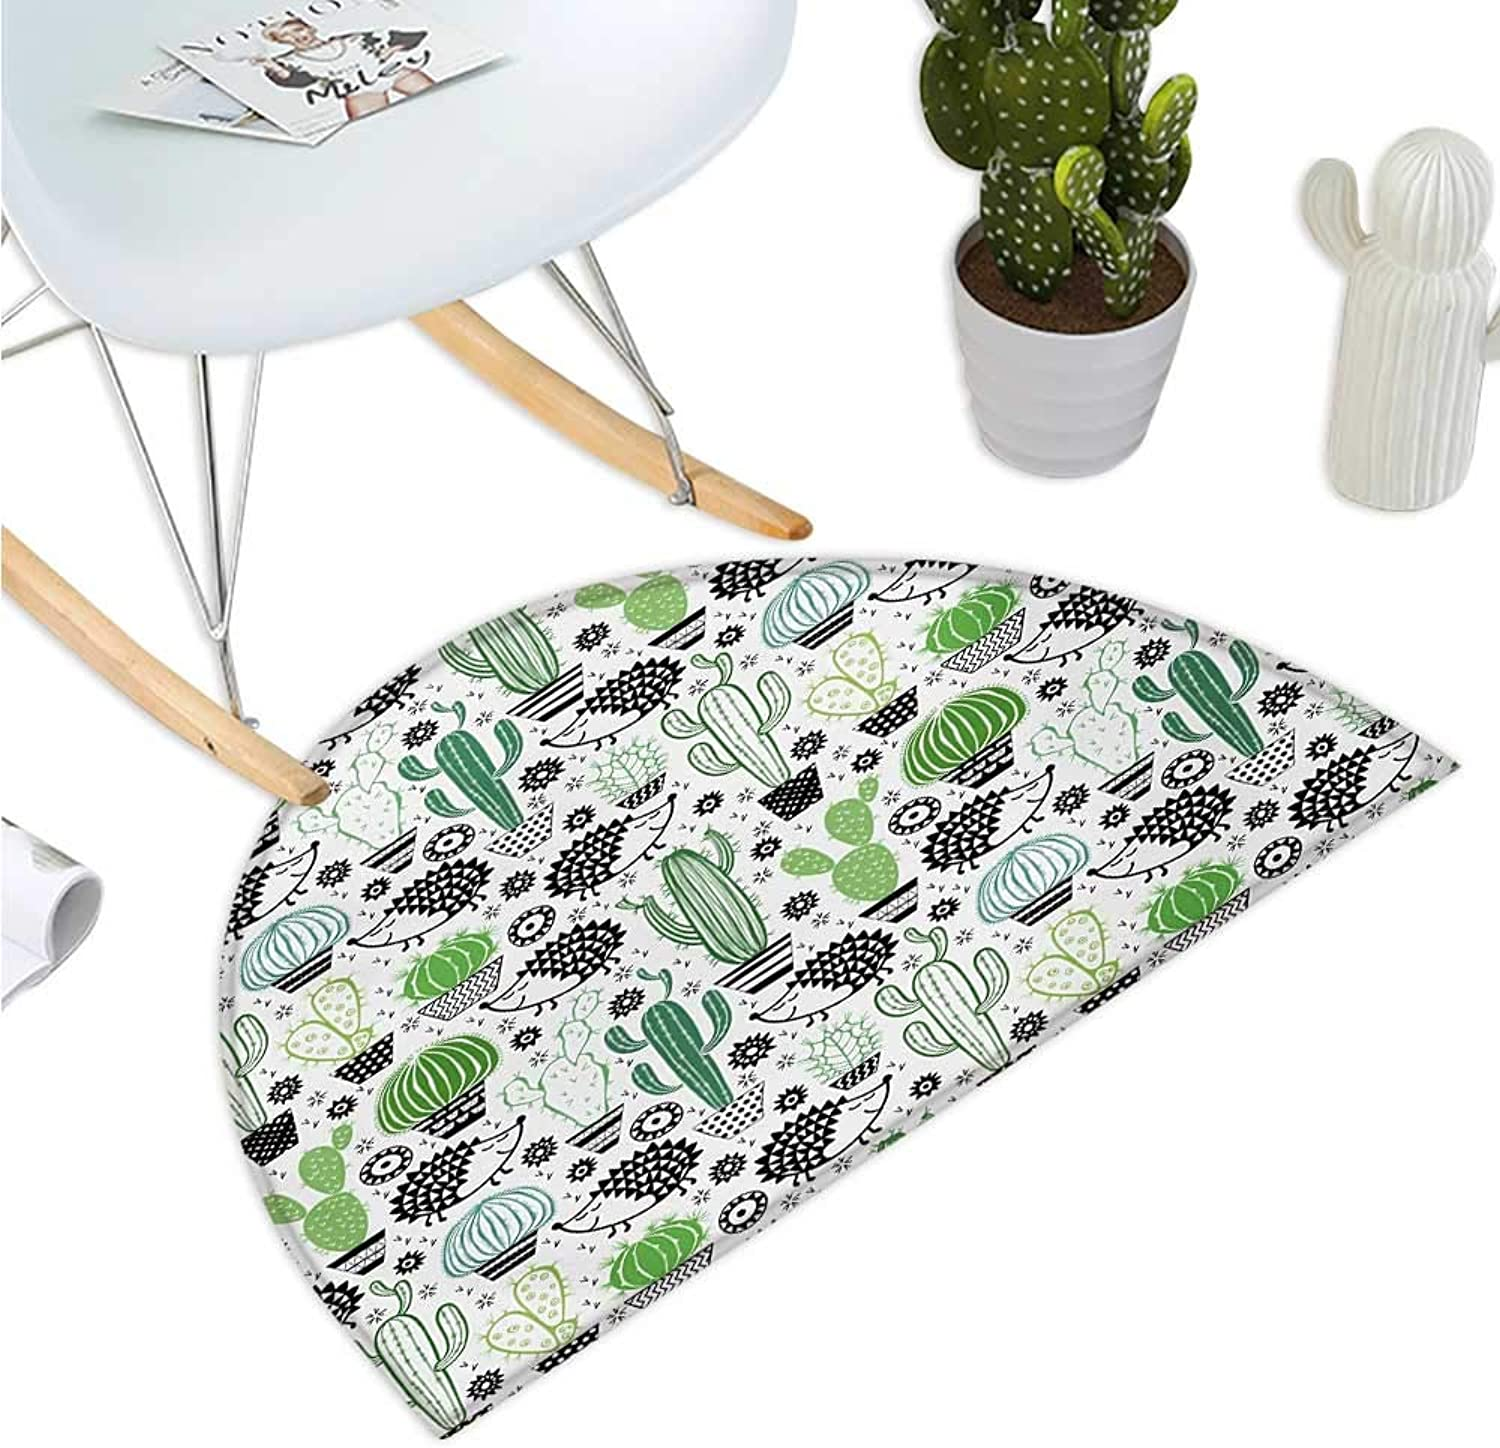 Cactus Semicircular Cushion Cartoon Style Inspired Drawing of Cute Hedgehog Animals Saguaro and Prickly Pear Entry Door Mat H 35.4  xD 53.1  Multicolor